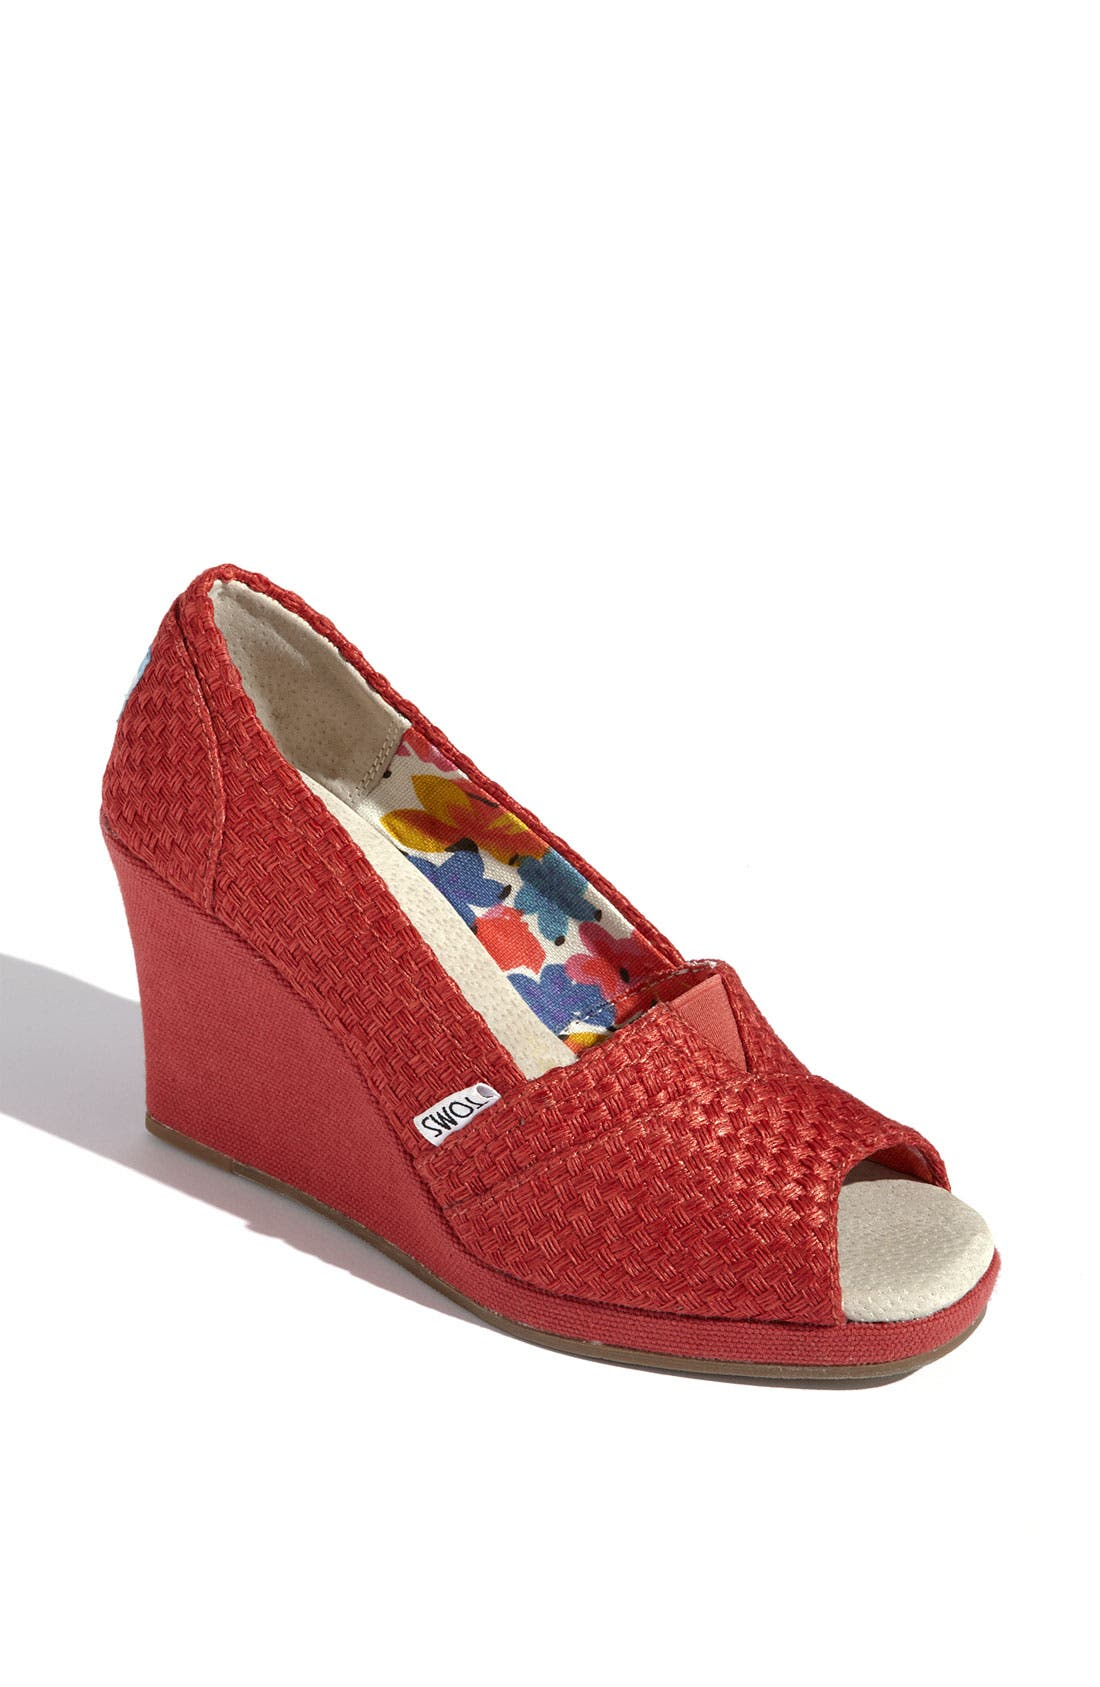 Main Image - TOMS 'Savannah' Wedge